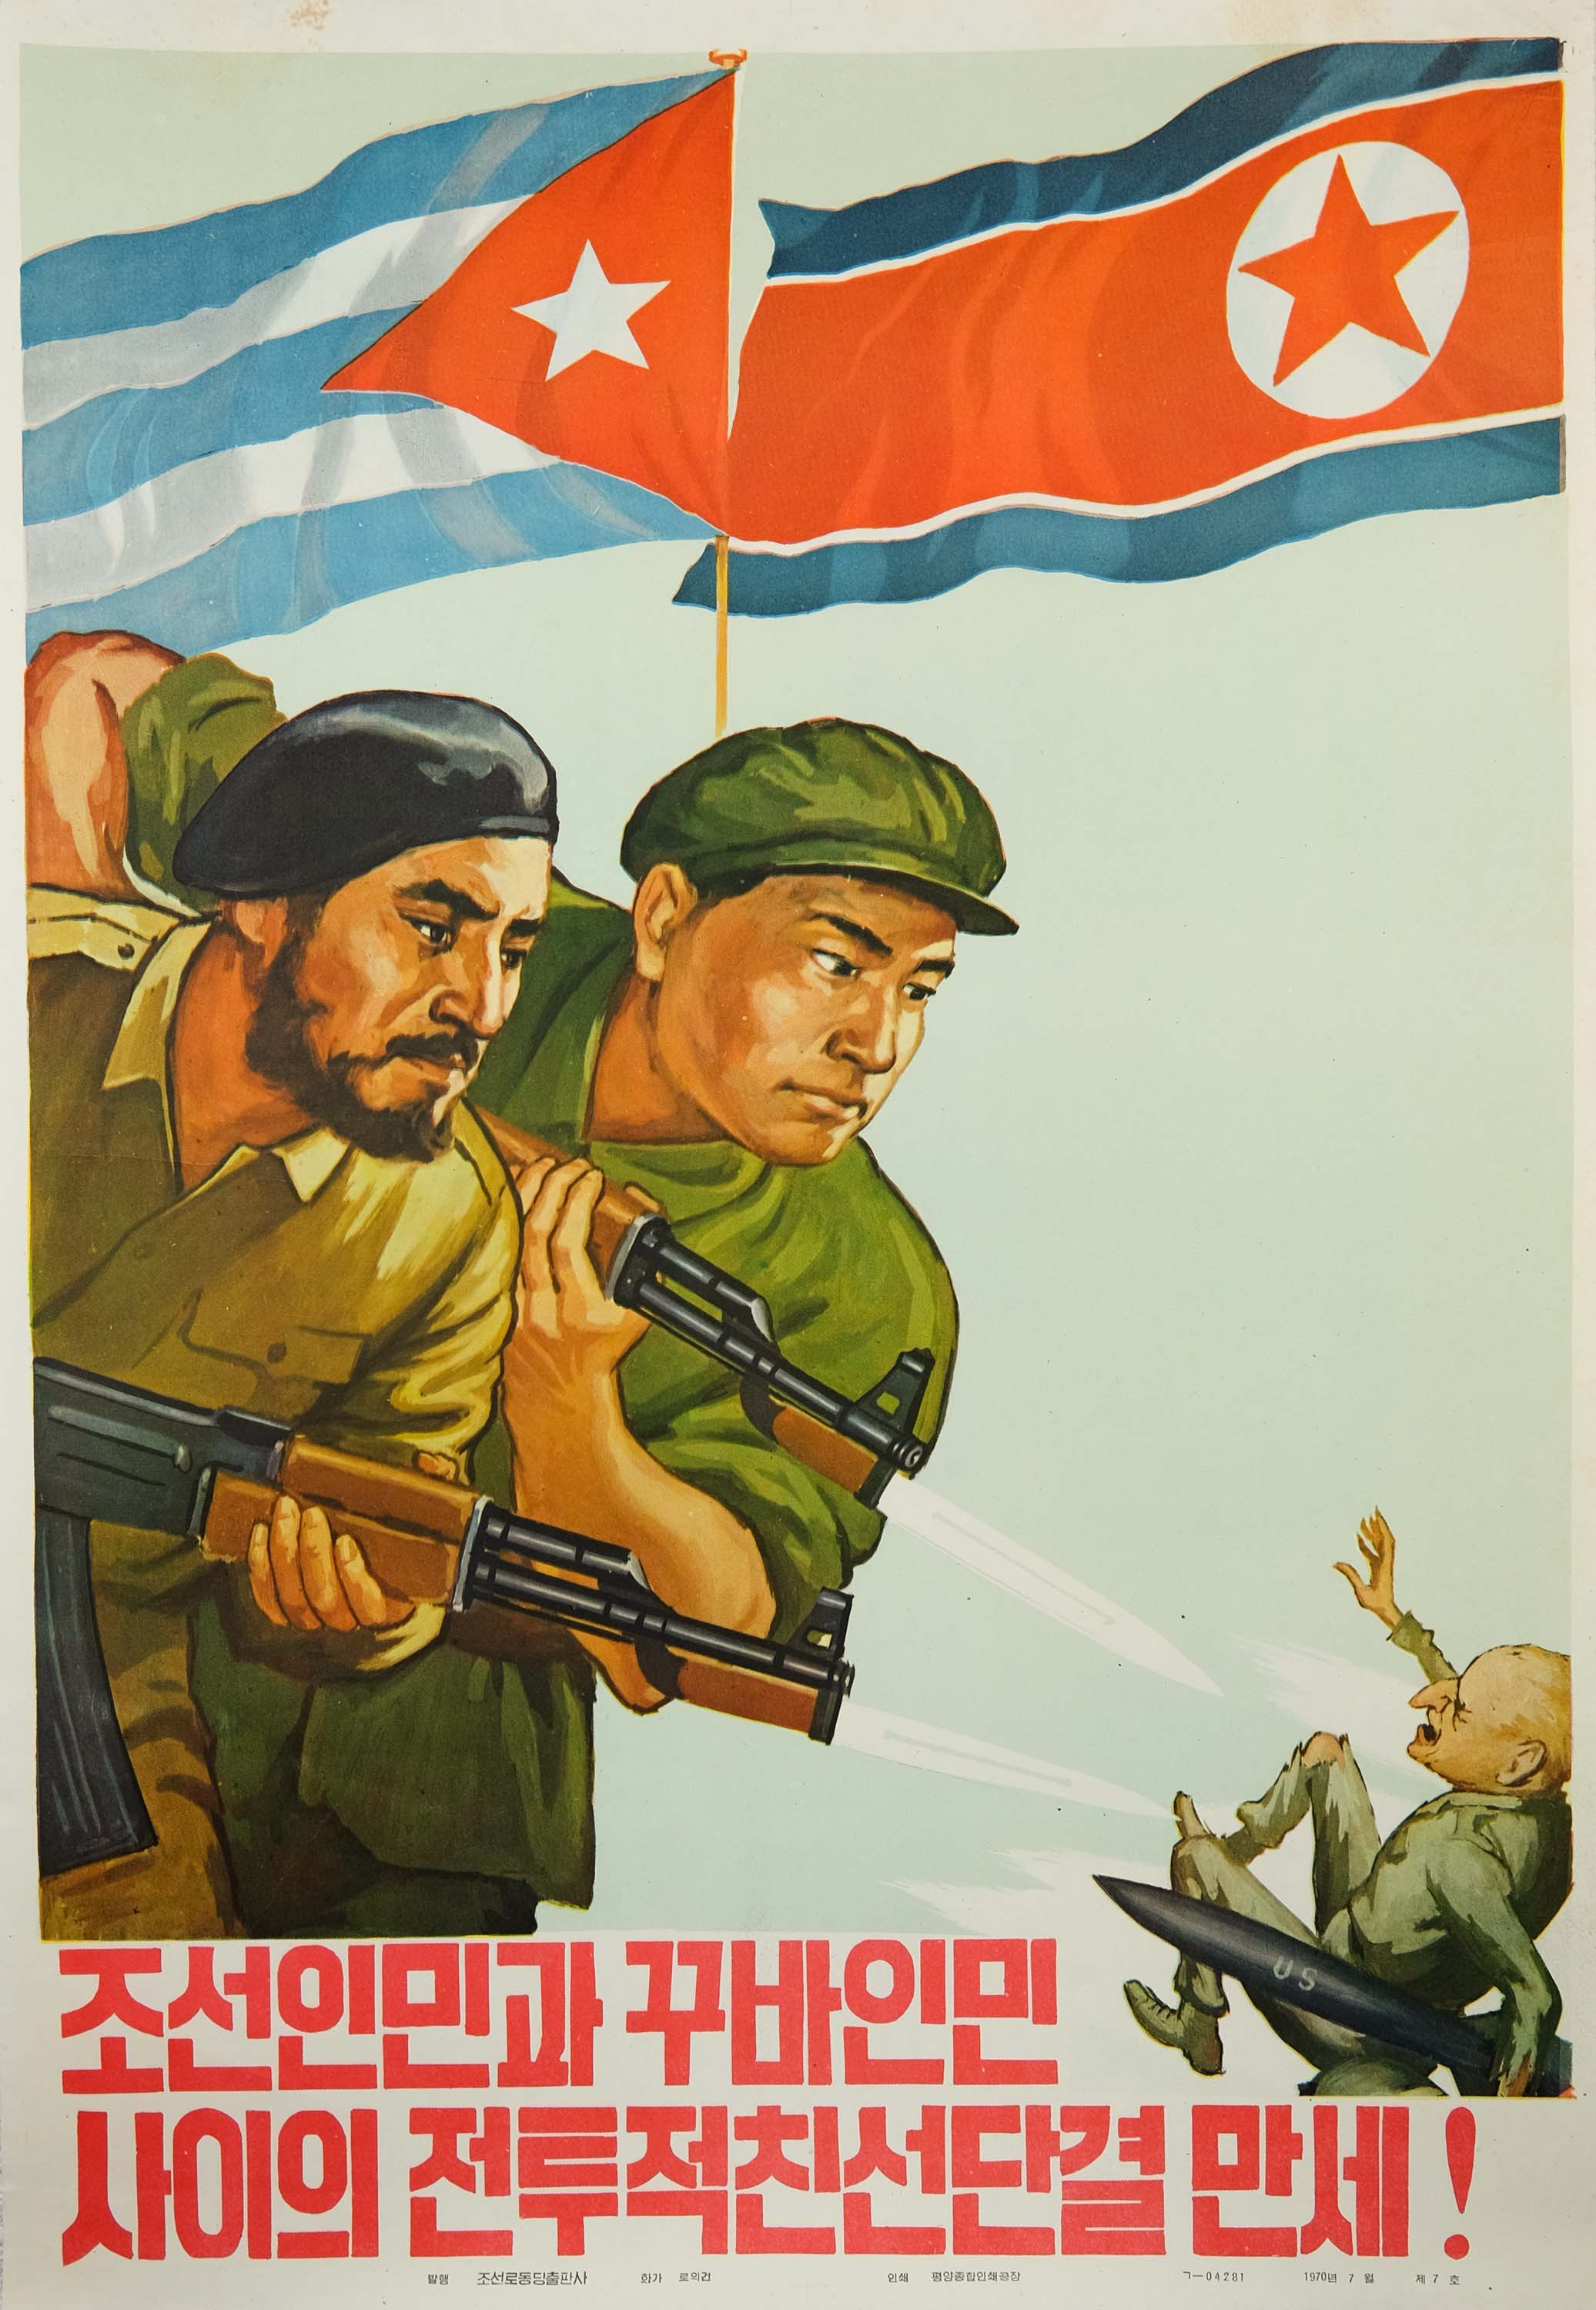 image of 1970 vintage original North Korean communist propaganda poster titled Militant unity and solidarity between the people of the DPRK and the Republic of Cuba!